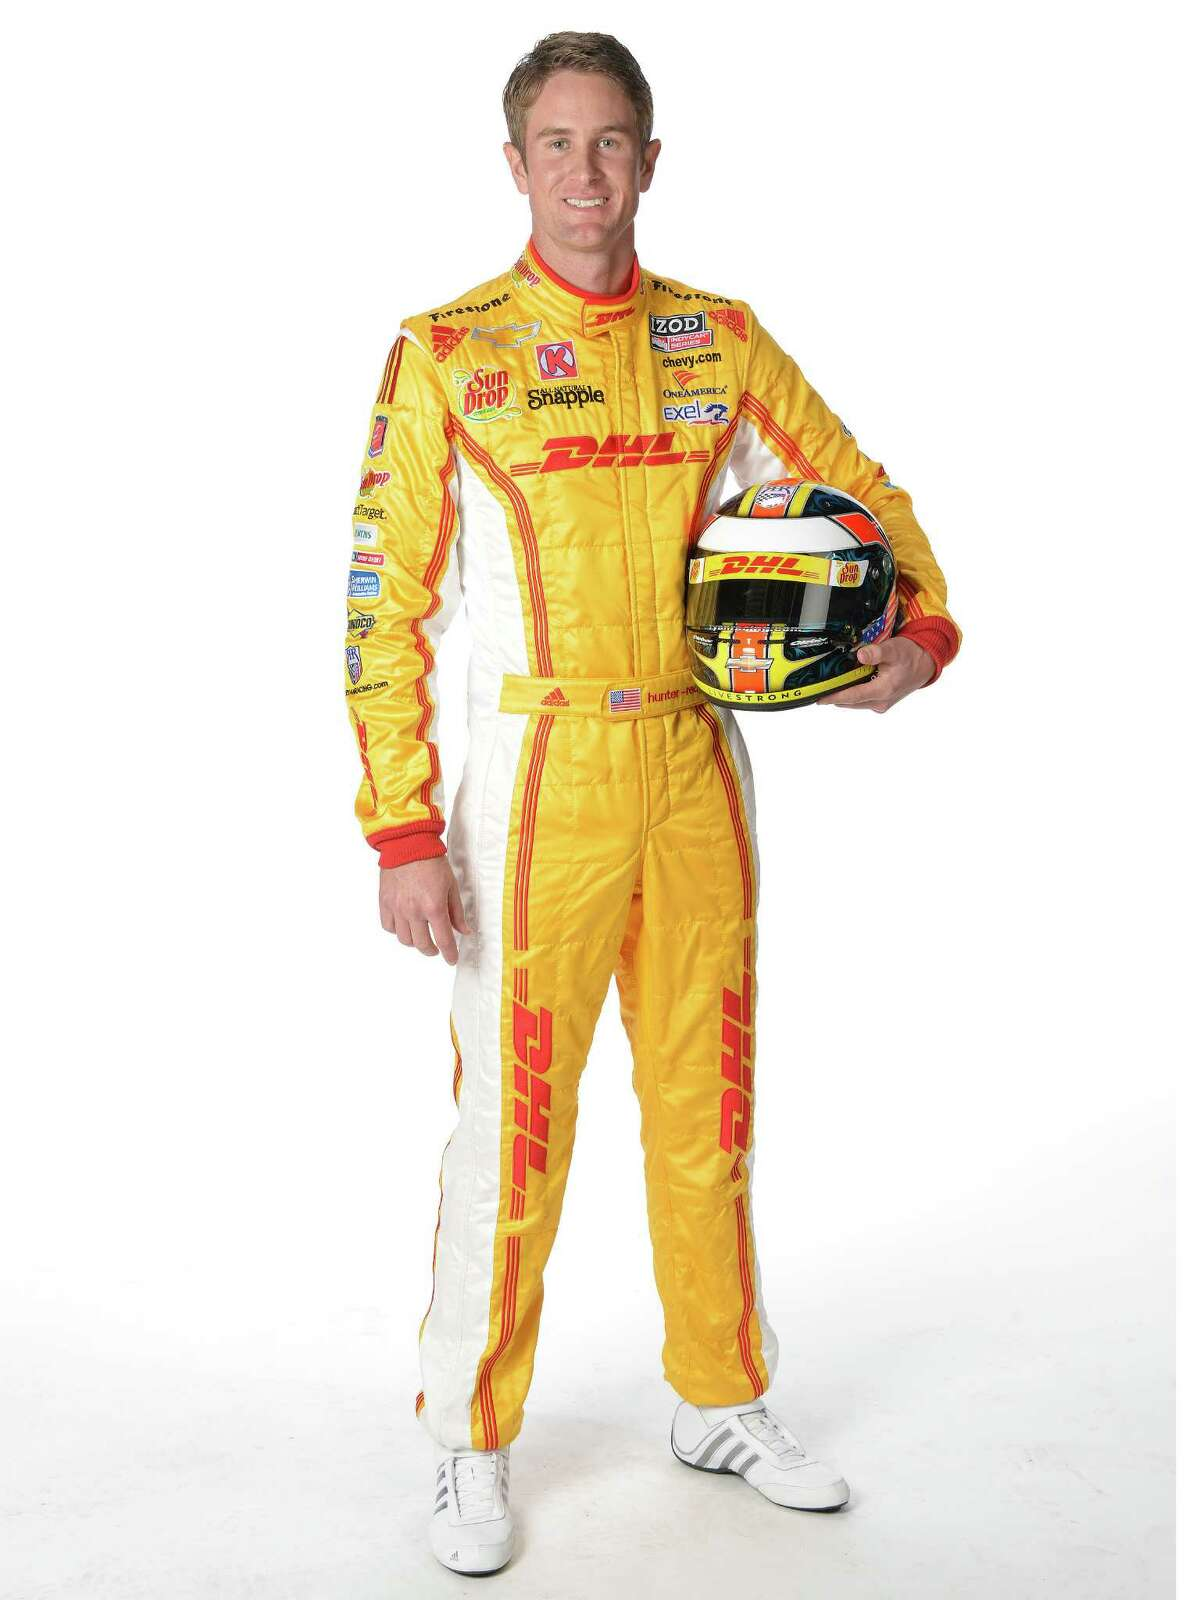 Ryan Hunter-Reay Car No.: 1  Team: Andretti Autosport  Age: 32  Hometown: Fort Lauderdale, Fla.  Residence: Fort Lauderdale, Fla.  Years in open-wheel racing: 10  Wins: 11  Highlights: Hunter-Reay became the first American driver since Sam Hornish in 2006 to win the IndyCar championship when he claimed the title in 2012. He's won twice this year and is fifth in points.